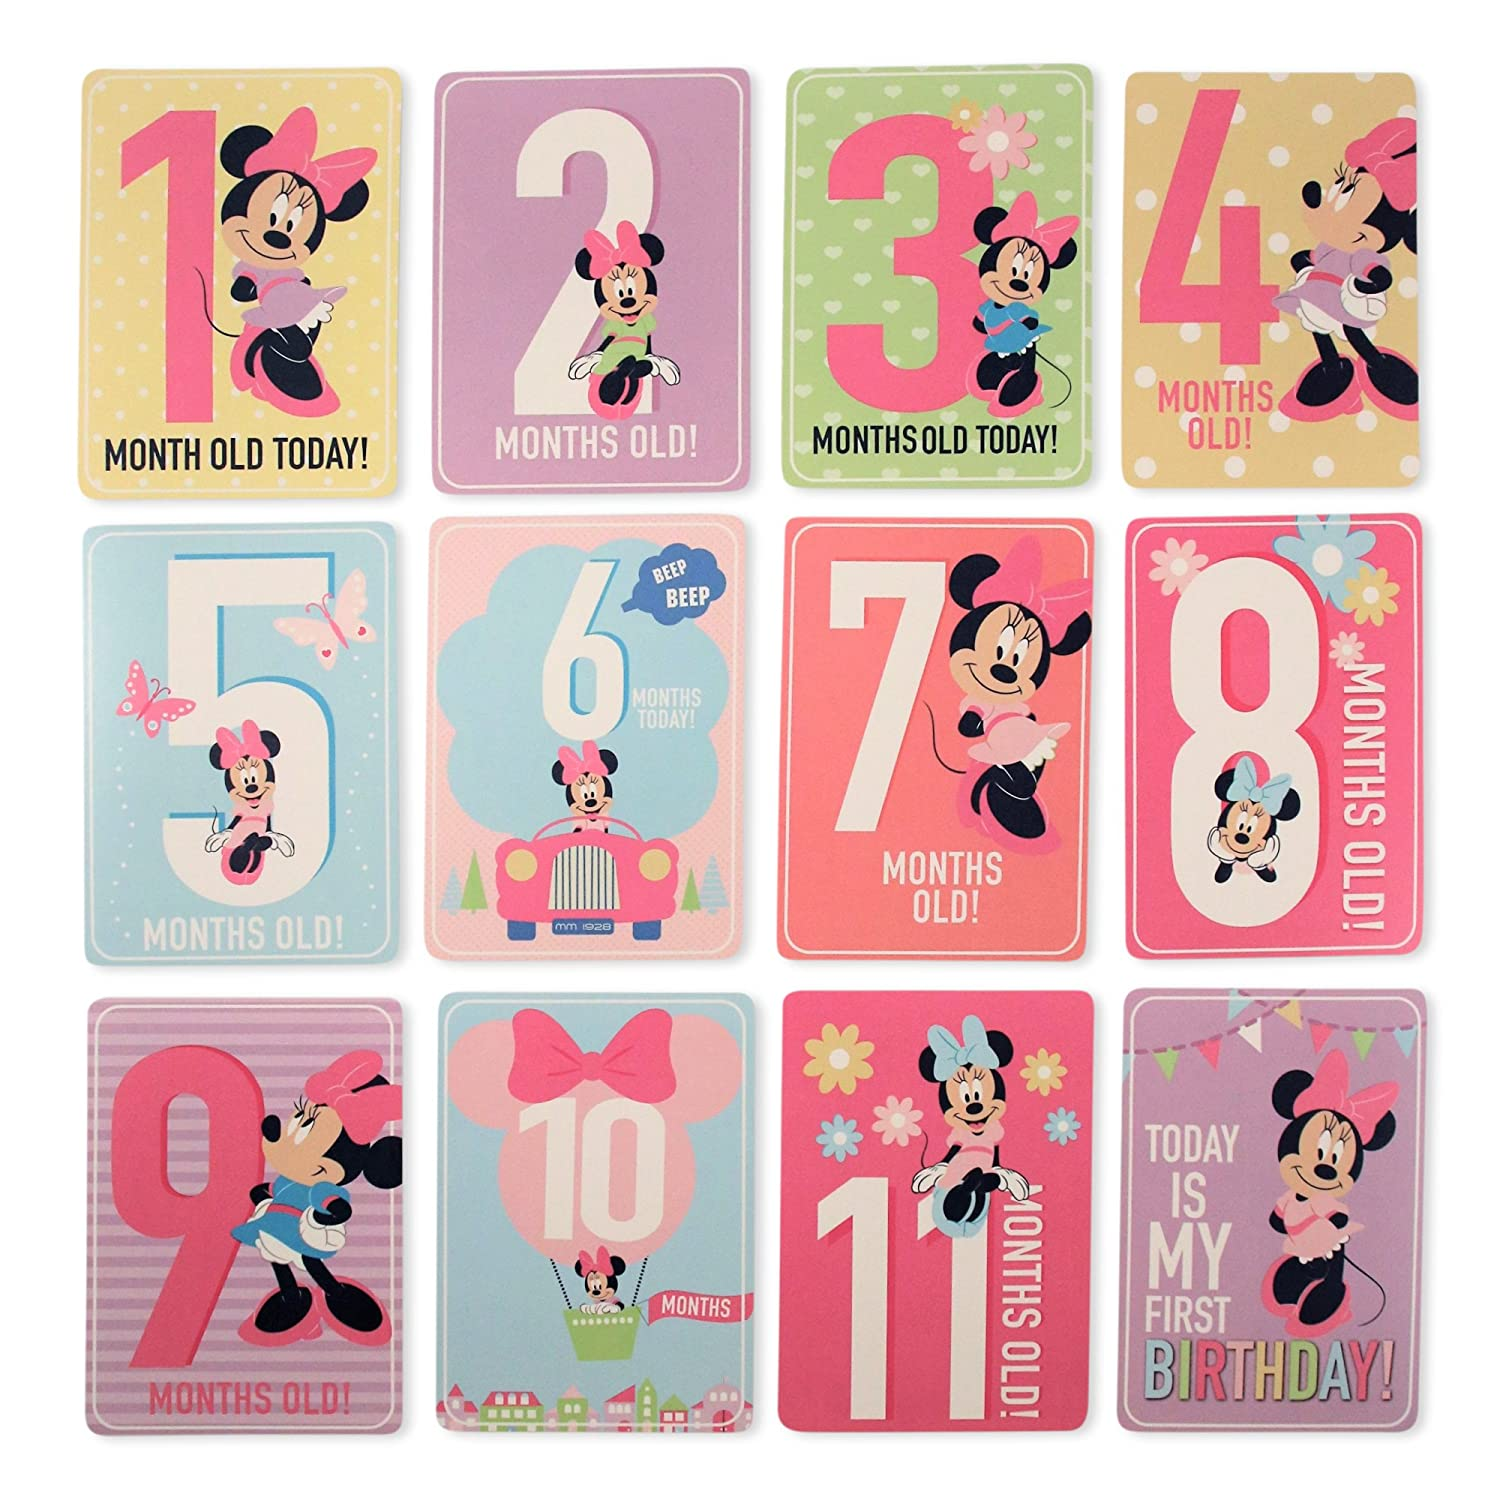 Disney Baby Girls Character Milestone Cards Gift Set, Minnie Mouse Milestone Cards, No Size Mickey Mouse IDA71759